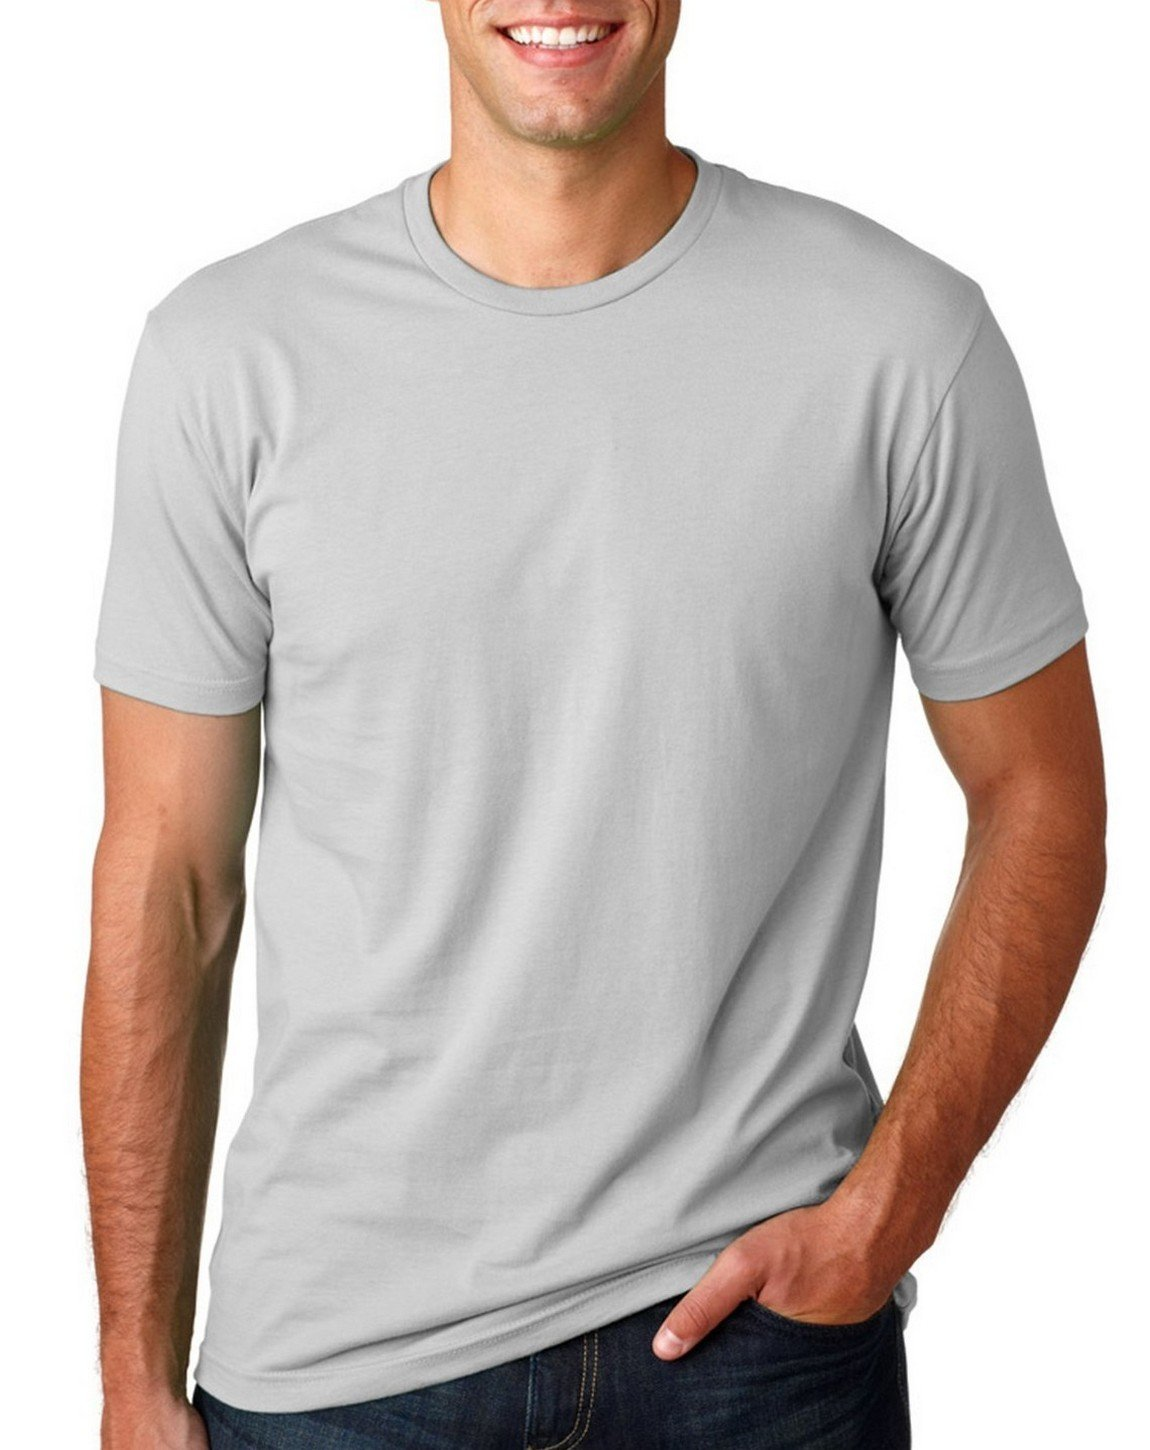 Next Level Mens Premium Fitted Crew Light Grey Large (Pack of 5)